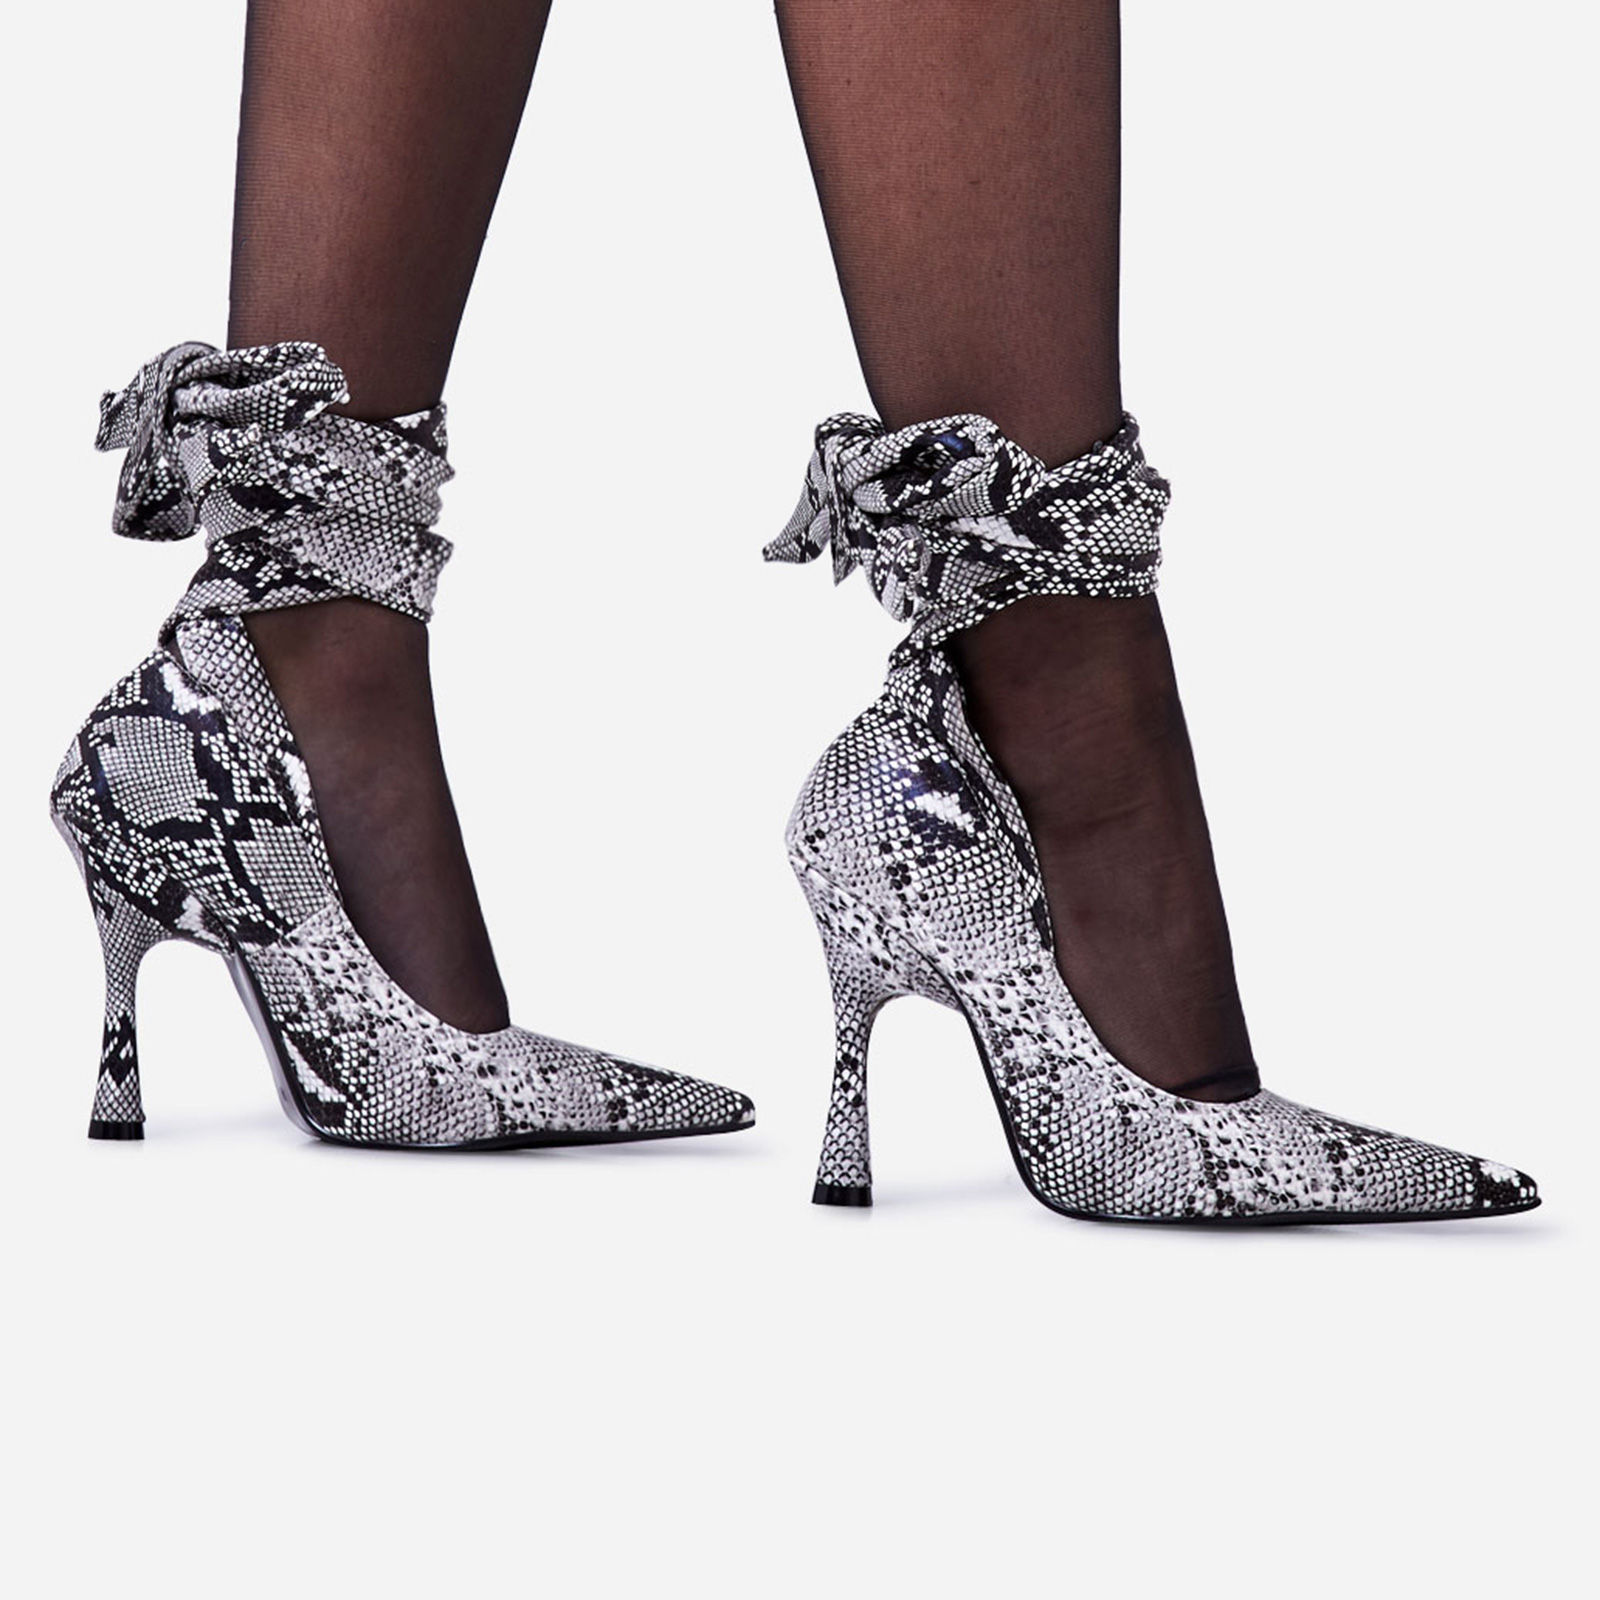 Balling Lace Up Pointed Court Heel In Grey Snake Print Faux Leather